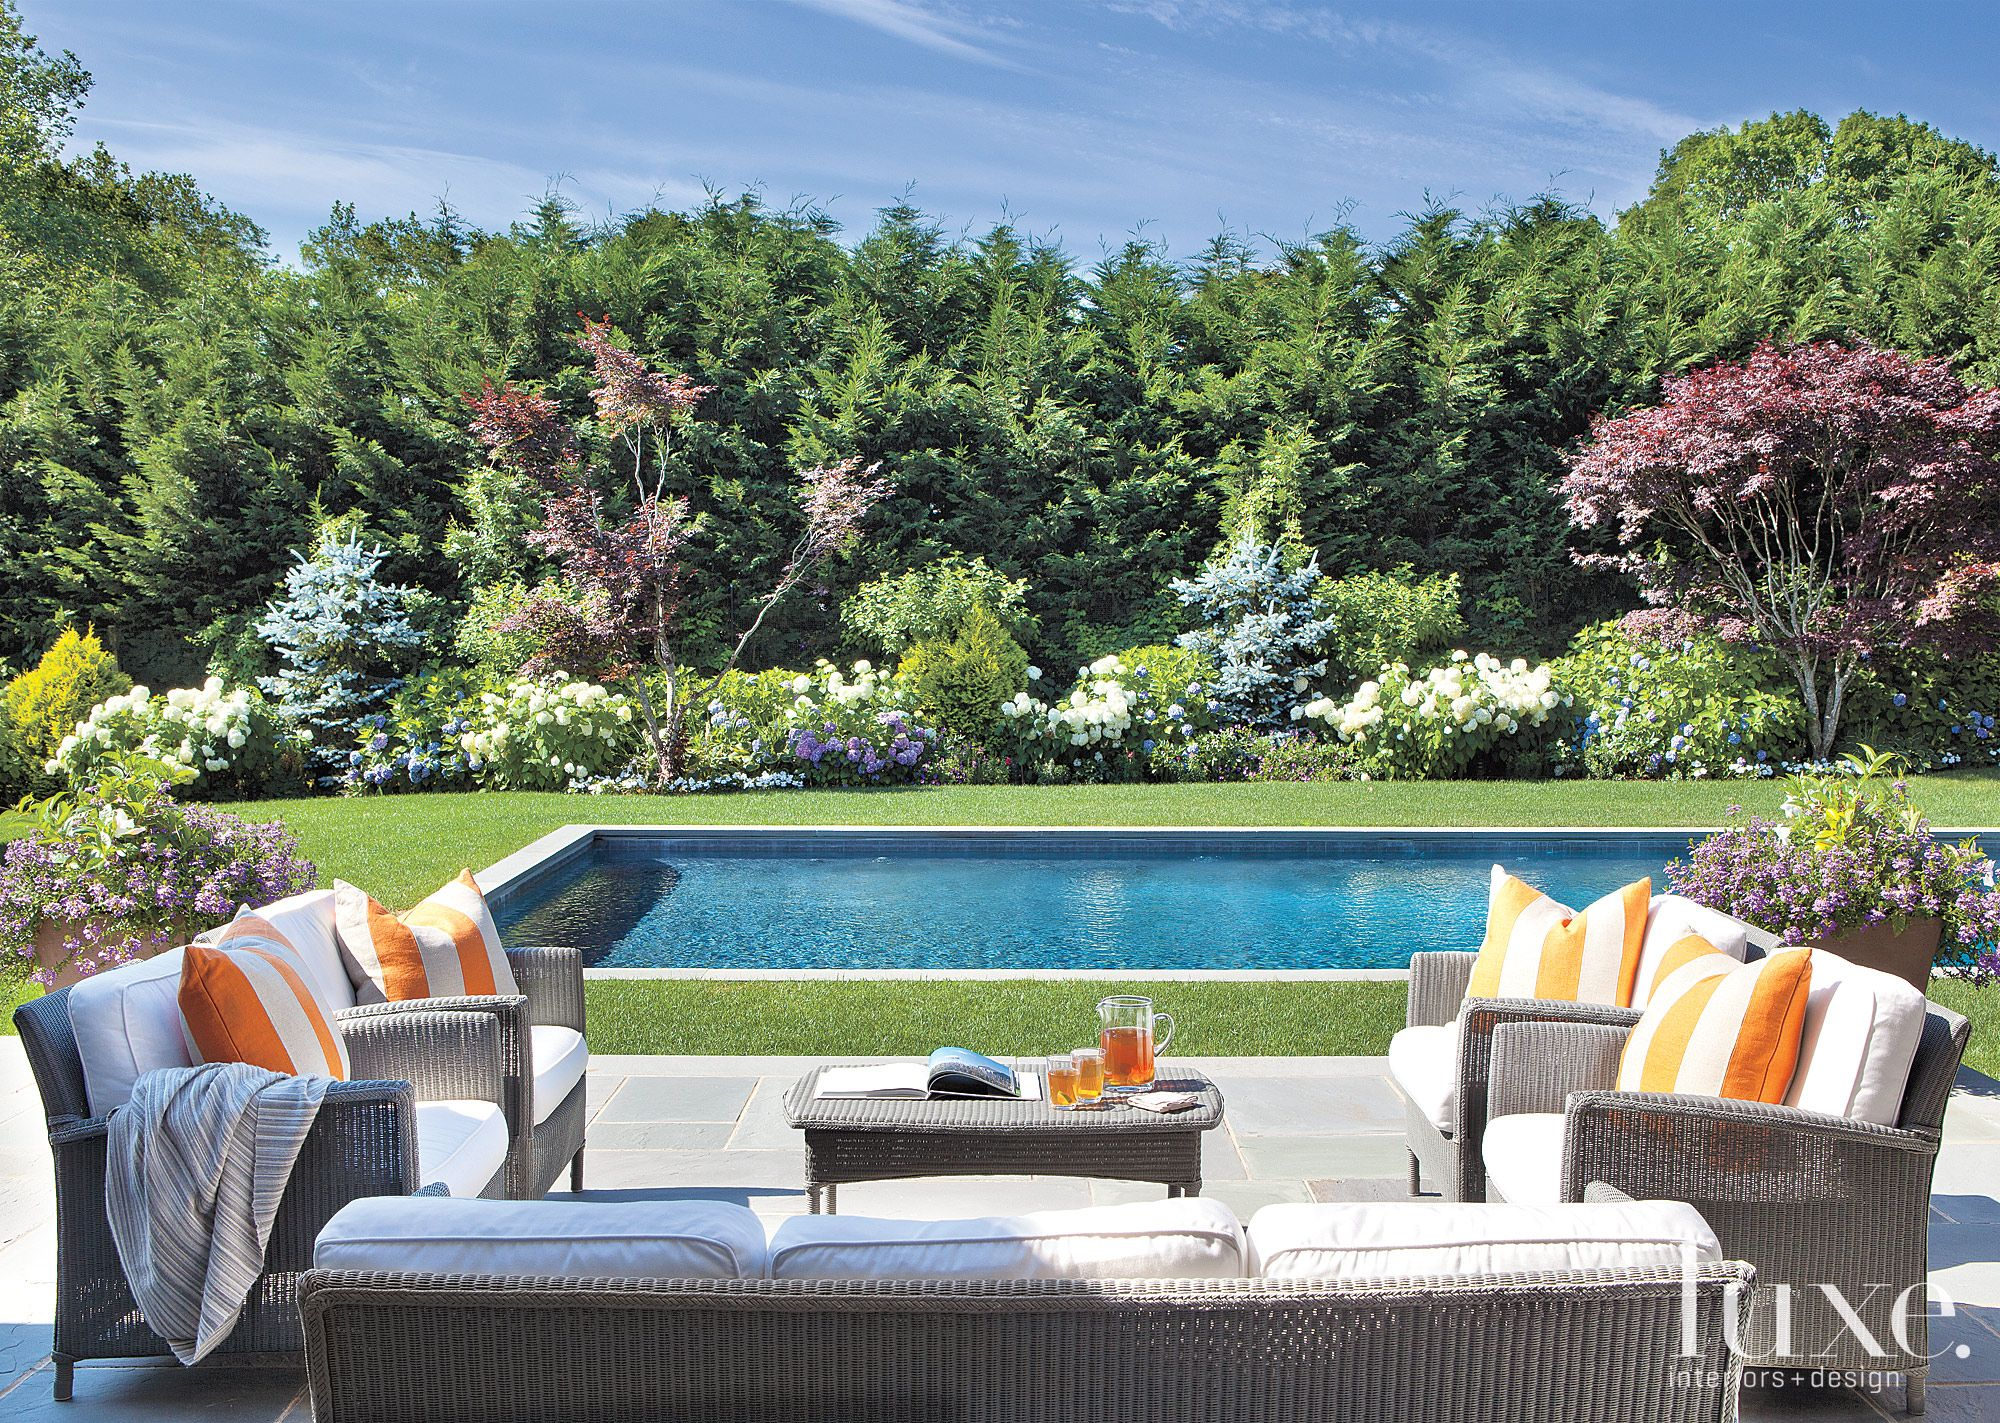 Traditional Neutral Pool Area with Lush Gardens